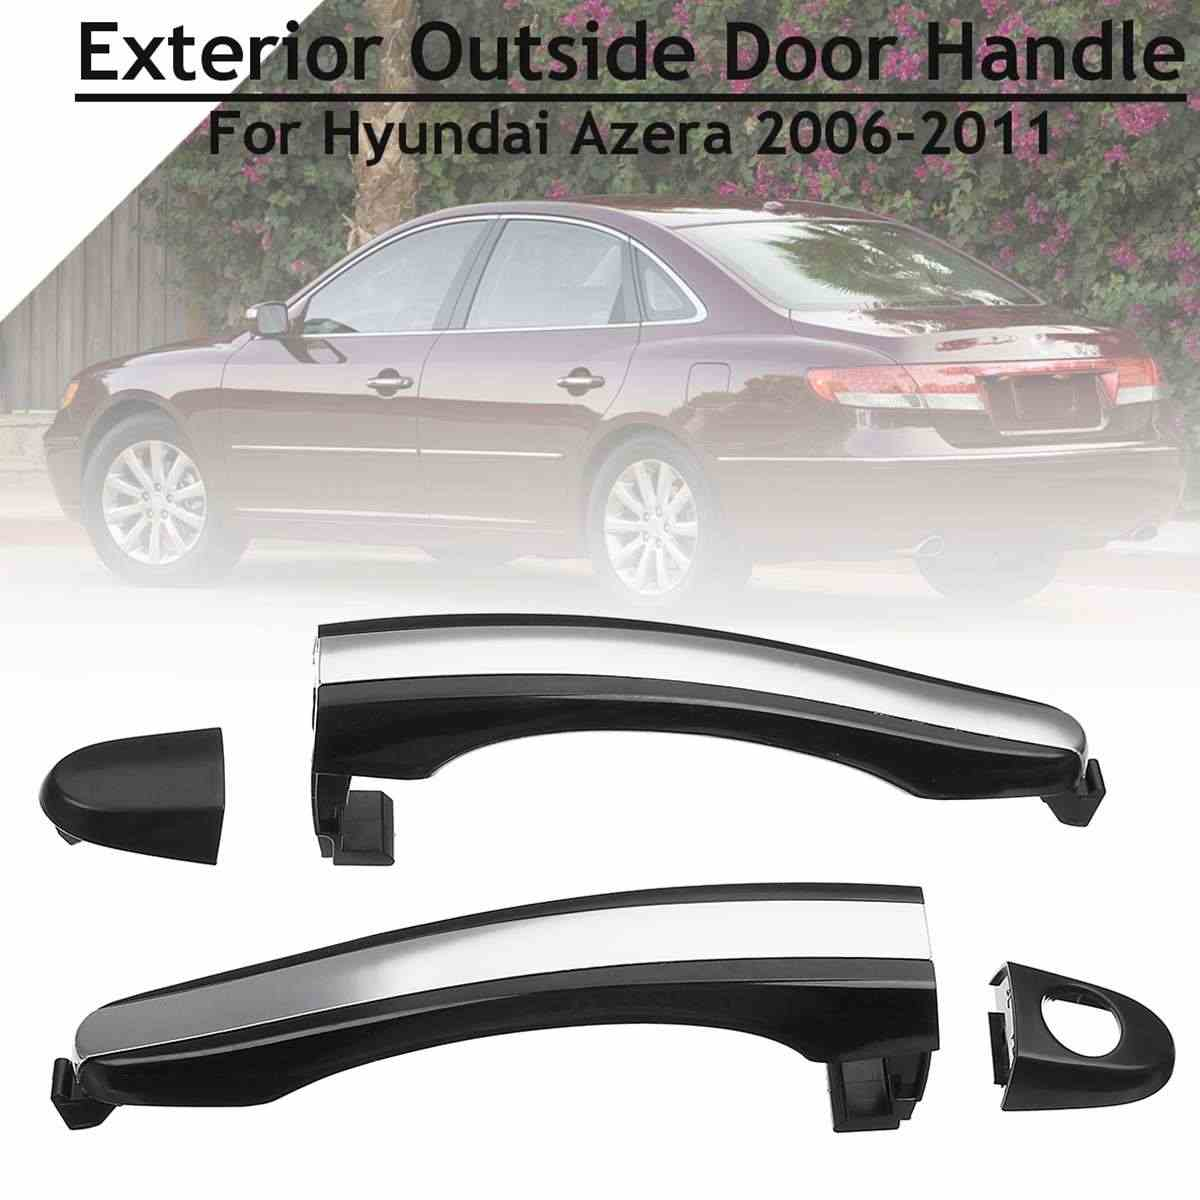 Rear Front Left Right Side Exterior Outside Door Handle Cover Trim Replacement For Hyundai Azera 2006 2007 2008 2009 2010 2011 Aliexpress